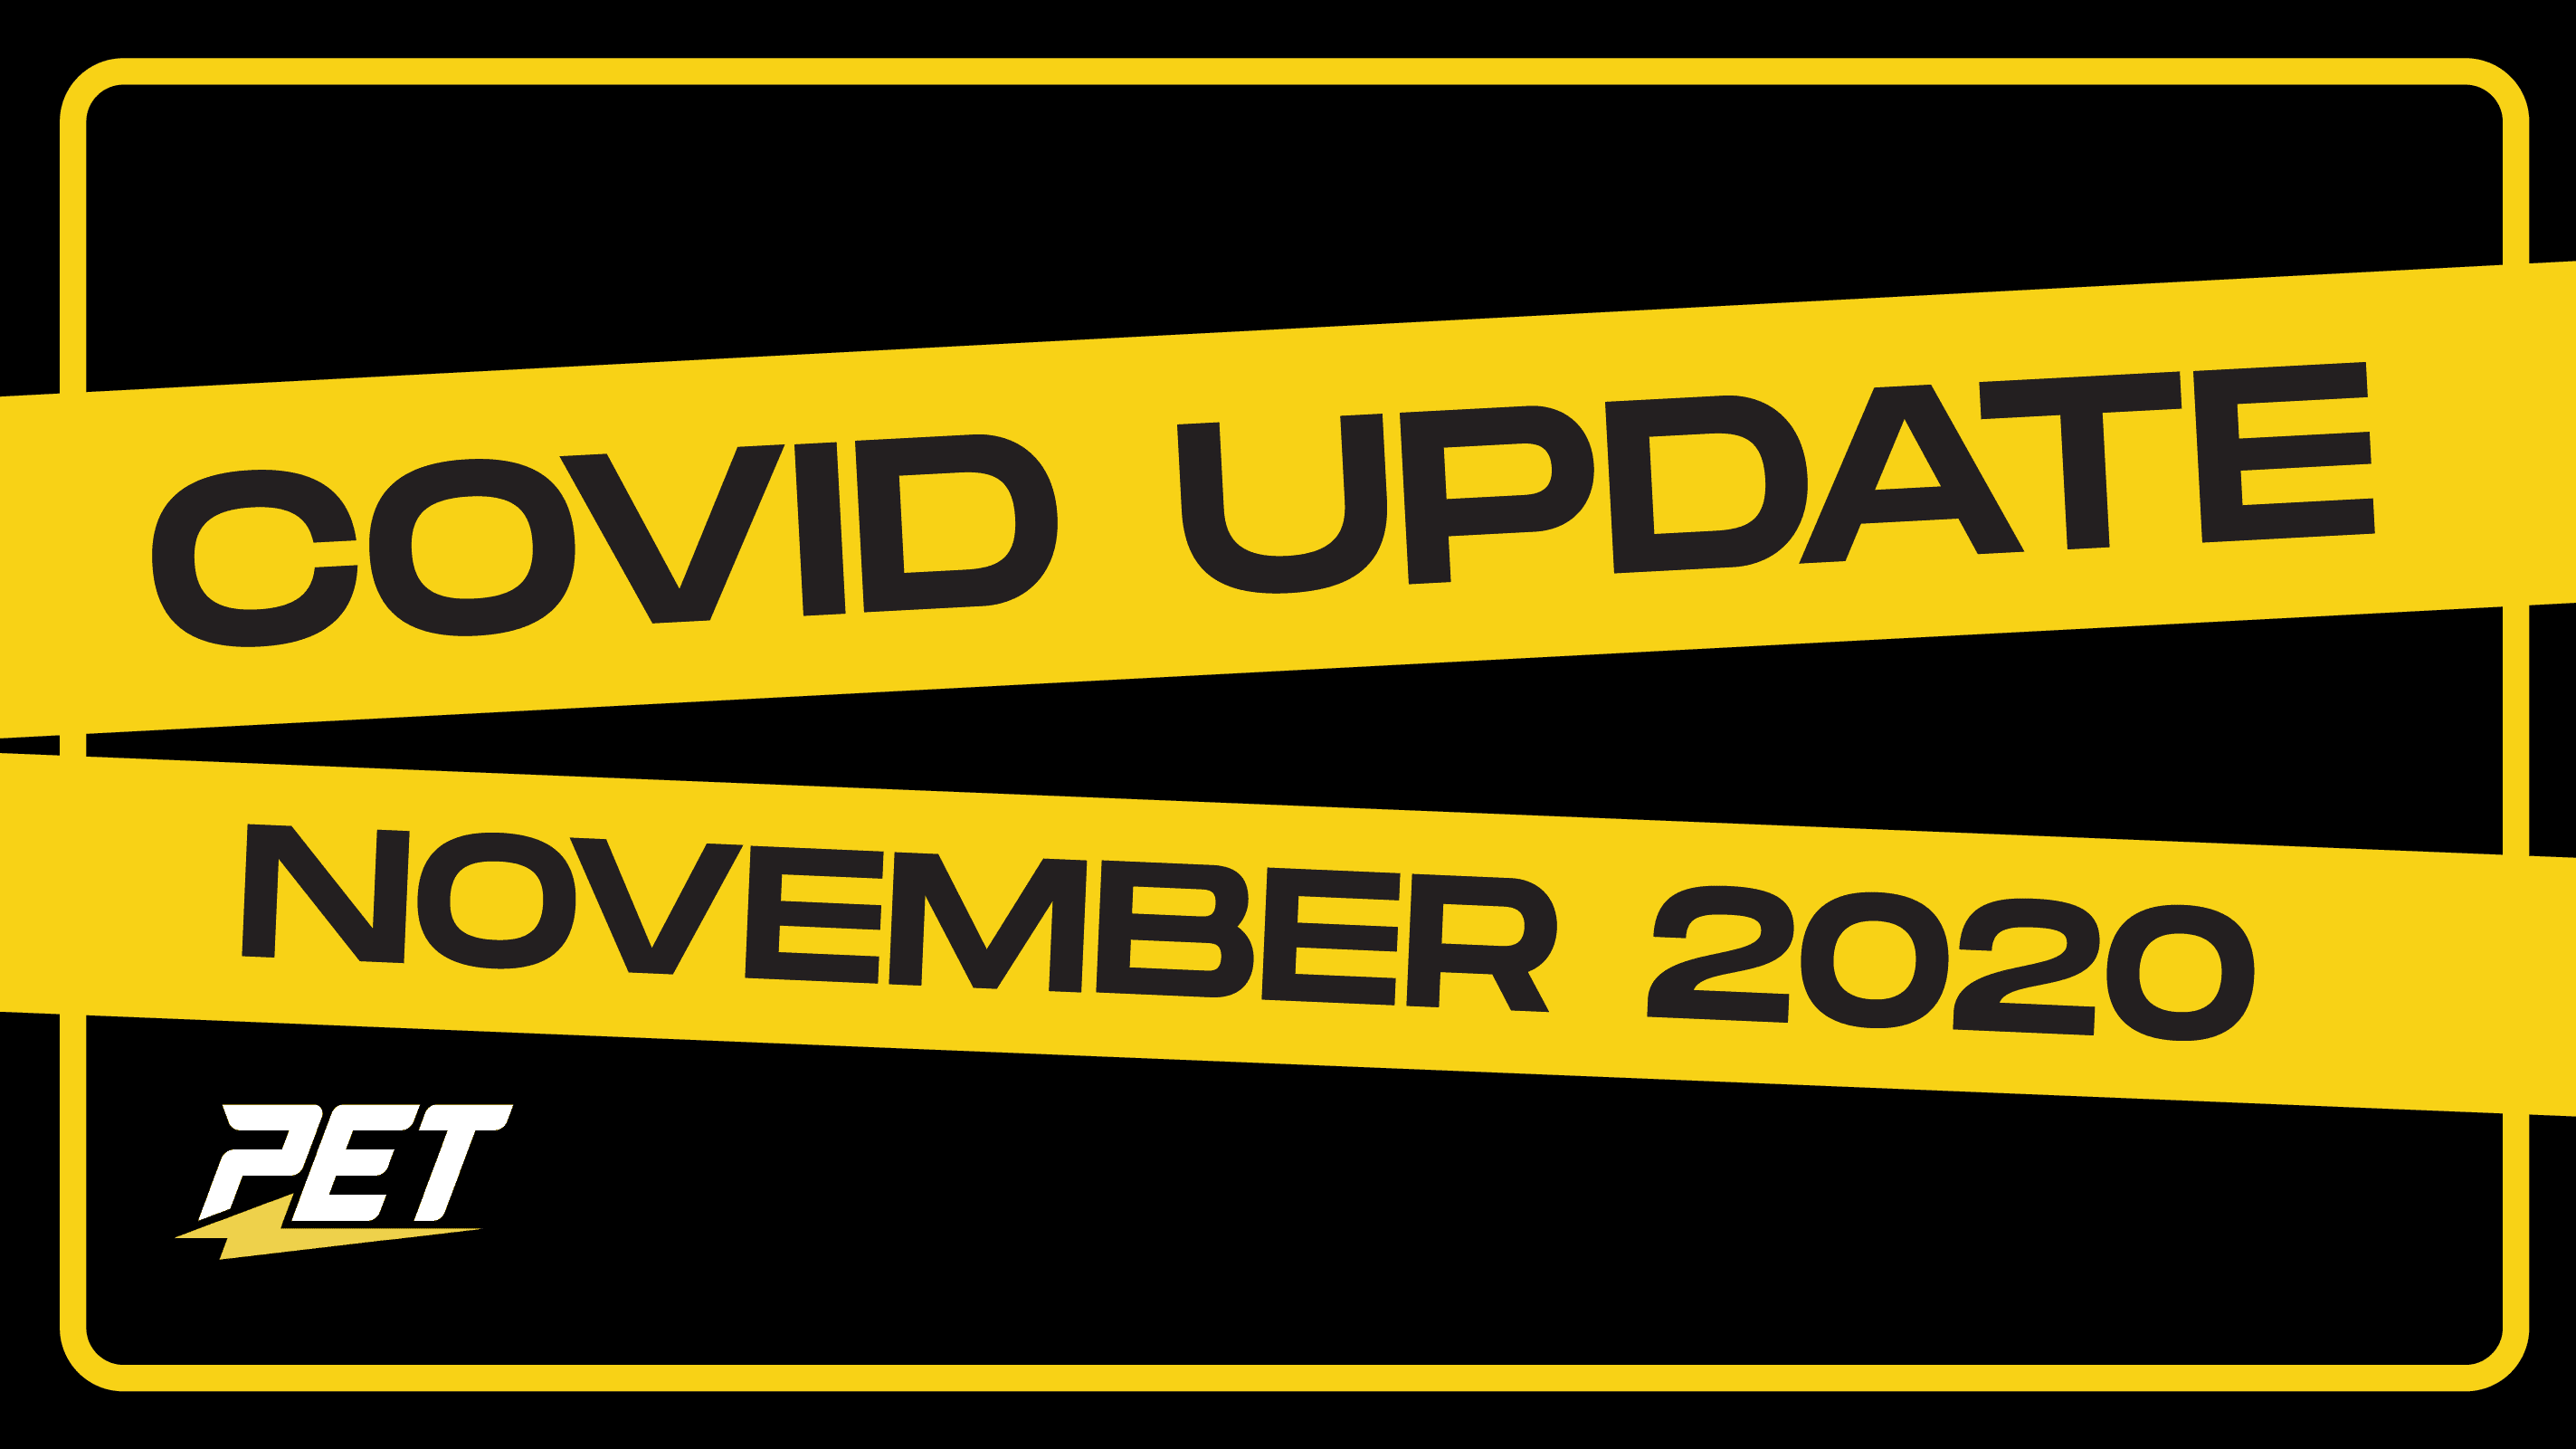 Covid Update November 2020 Personal Electric Transport